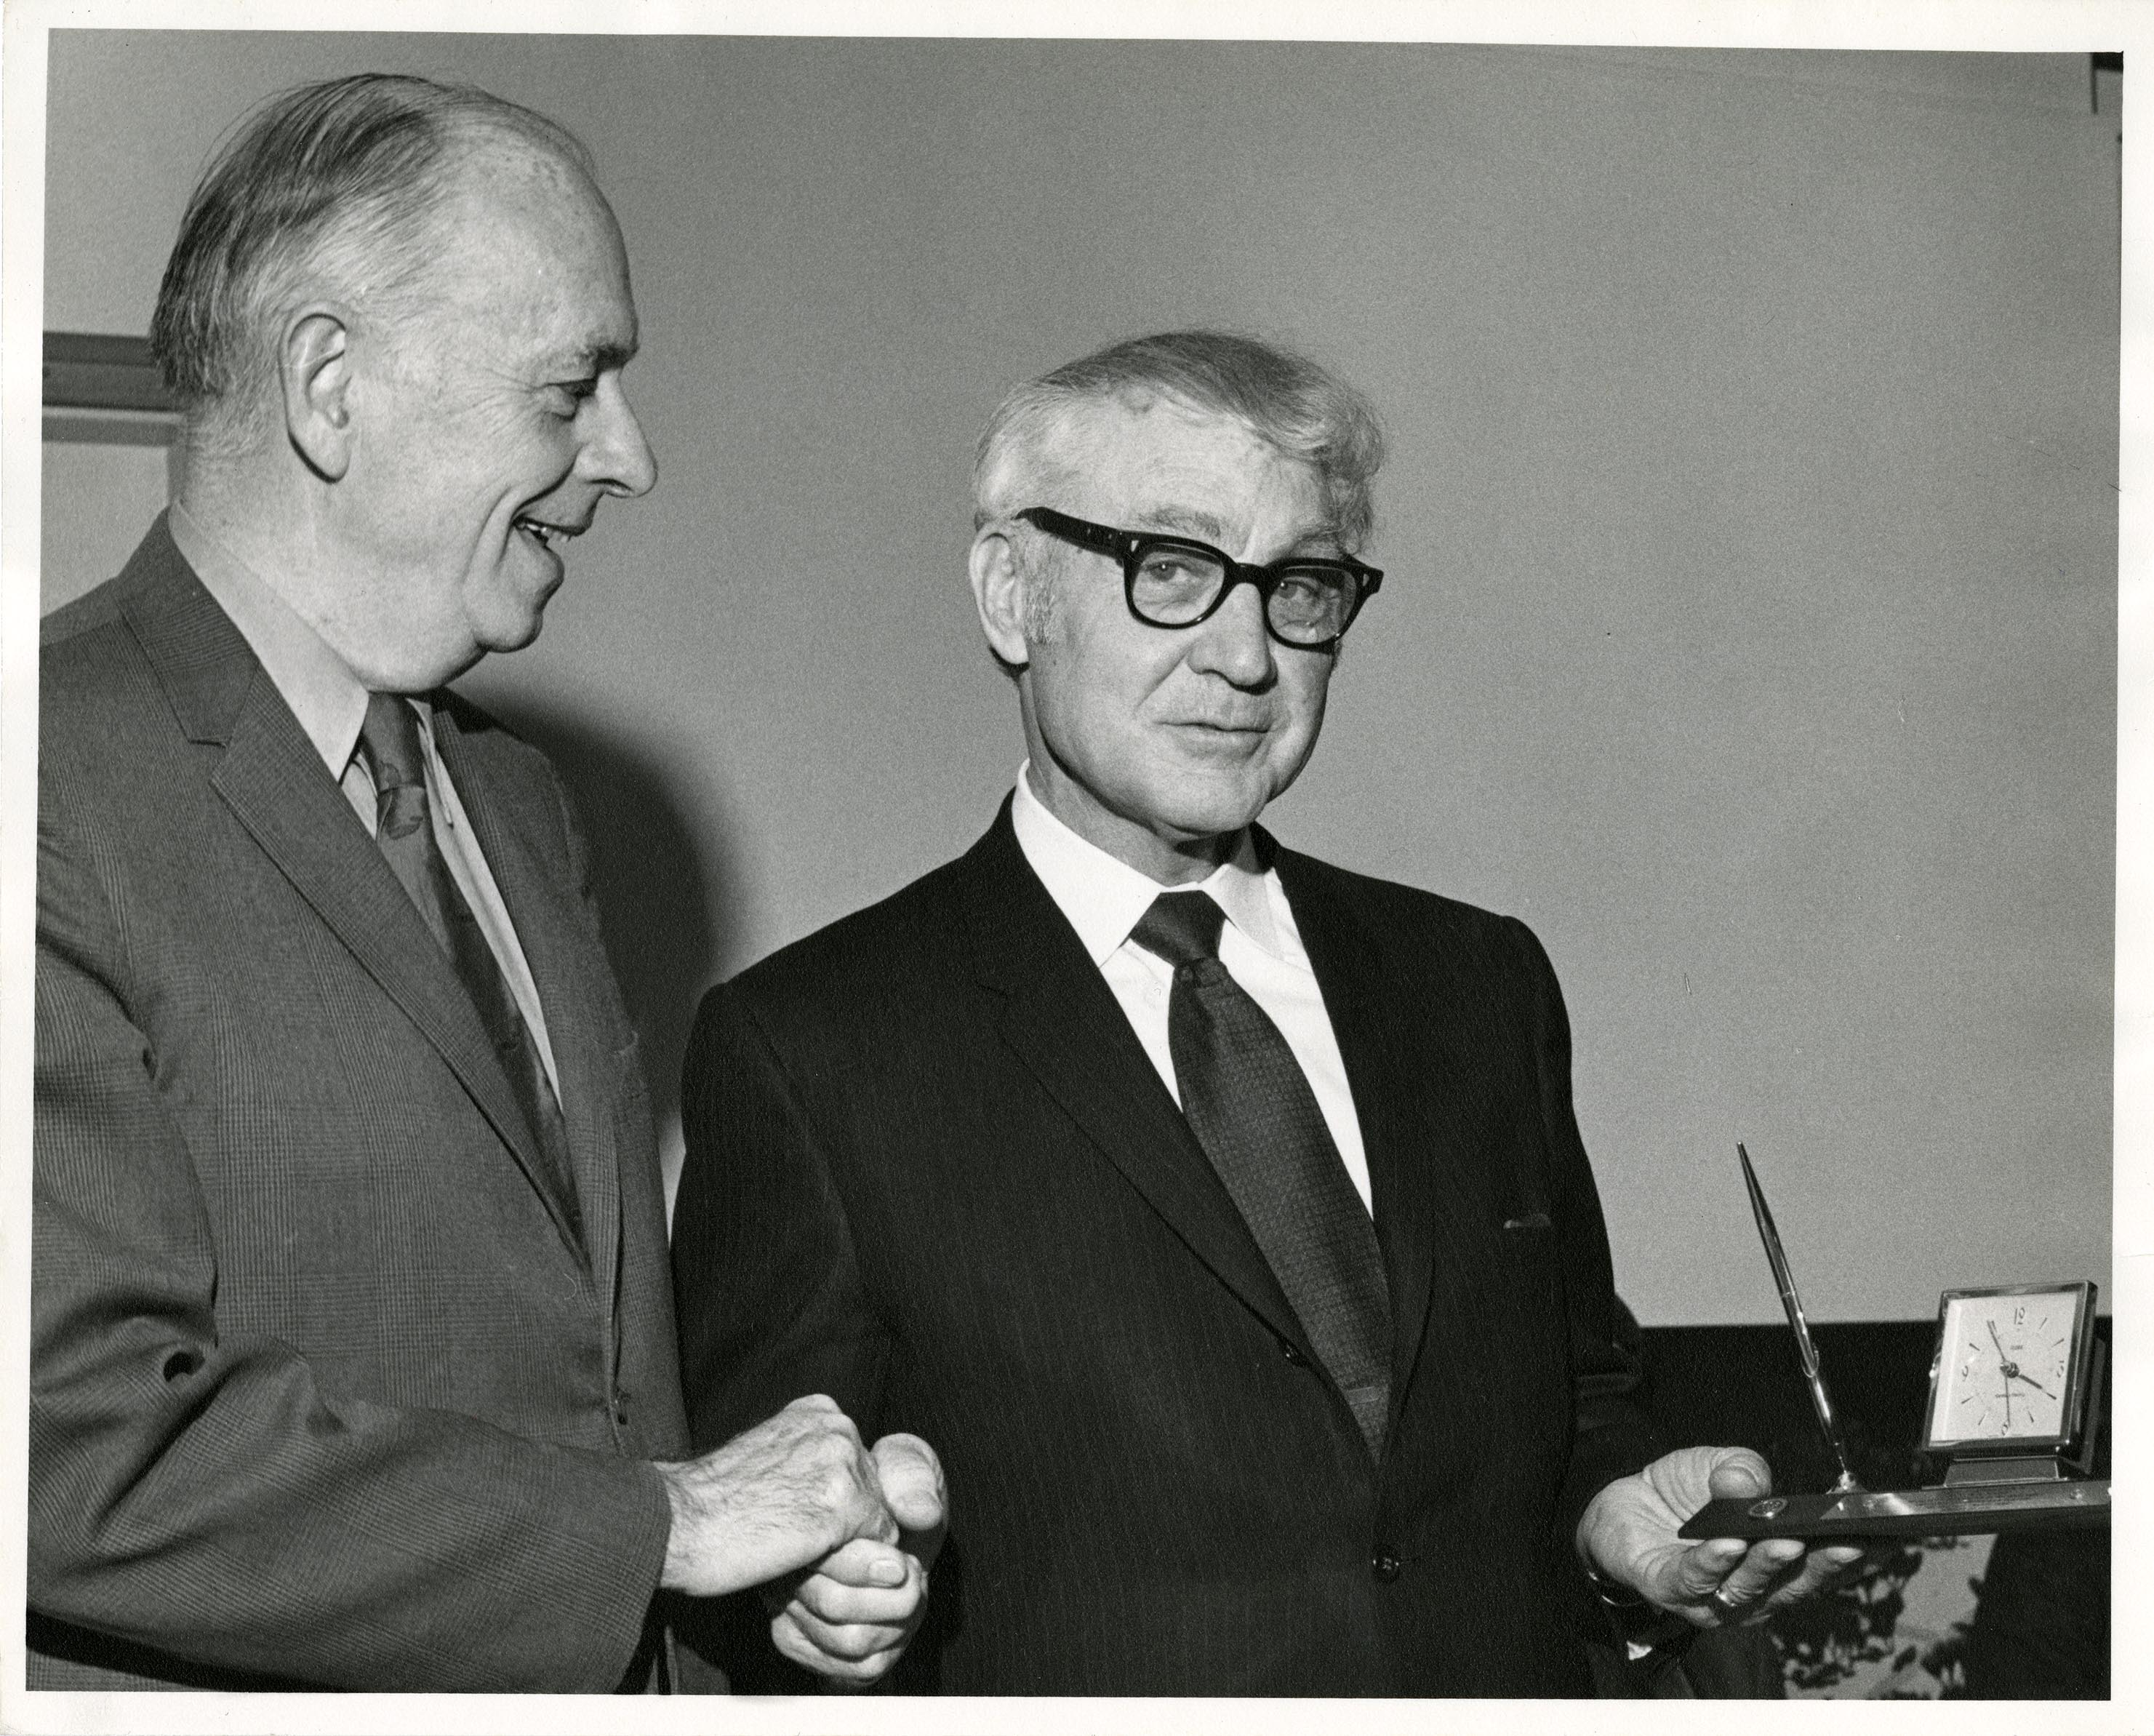 John Budds and Merlin D. Bishop, January 20, 1971